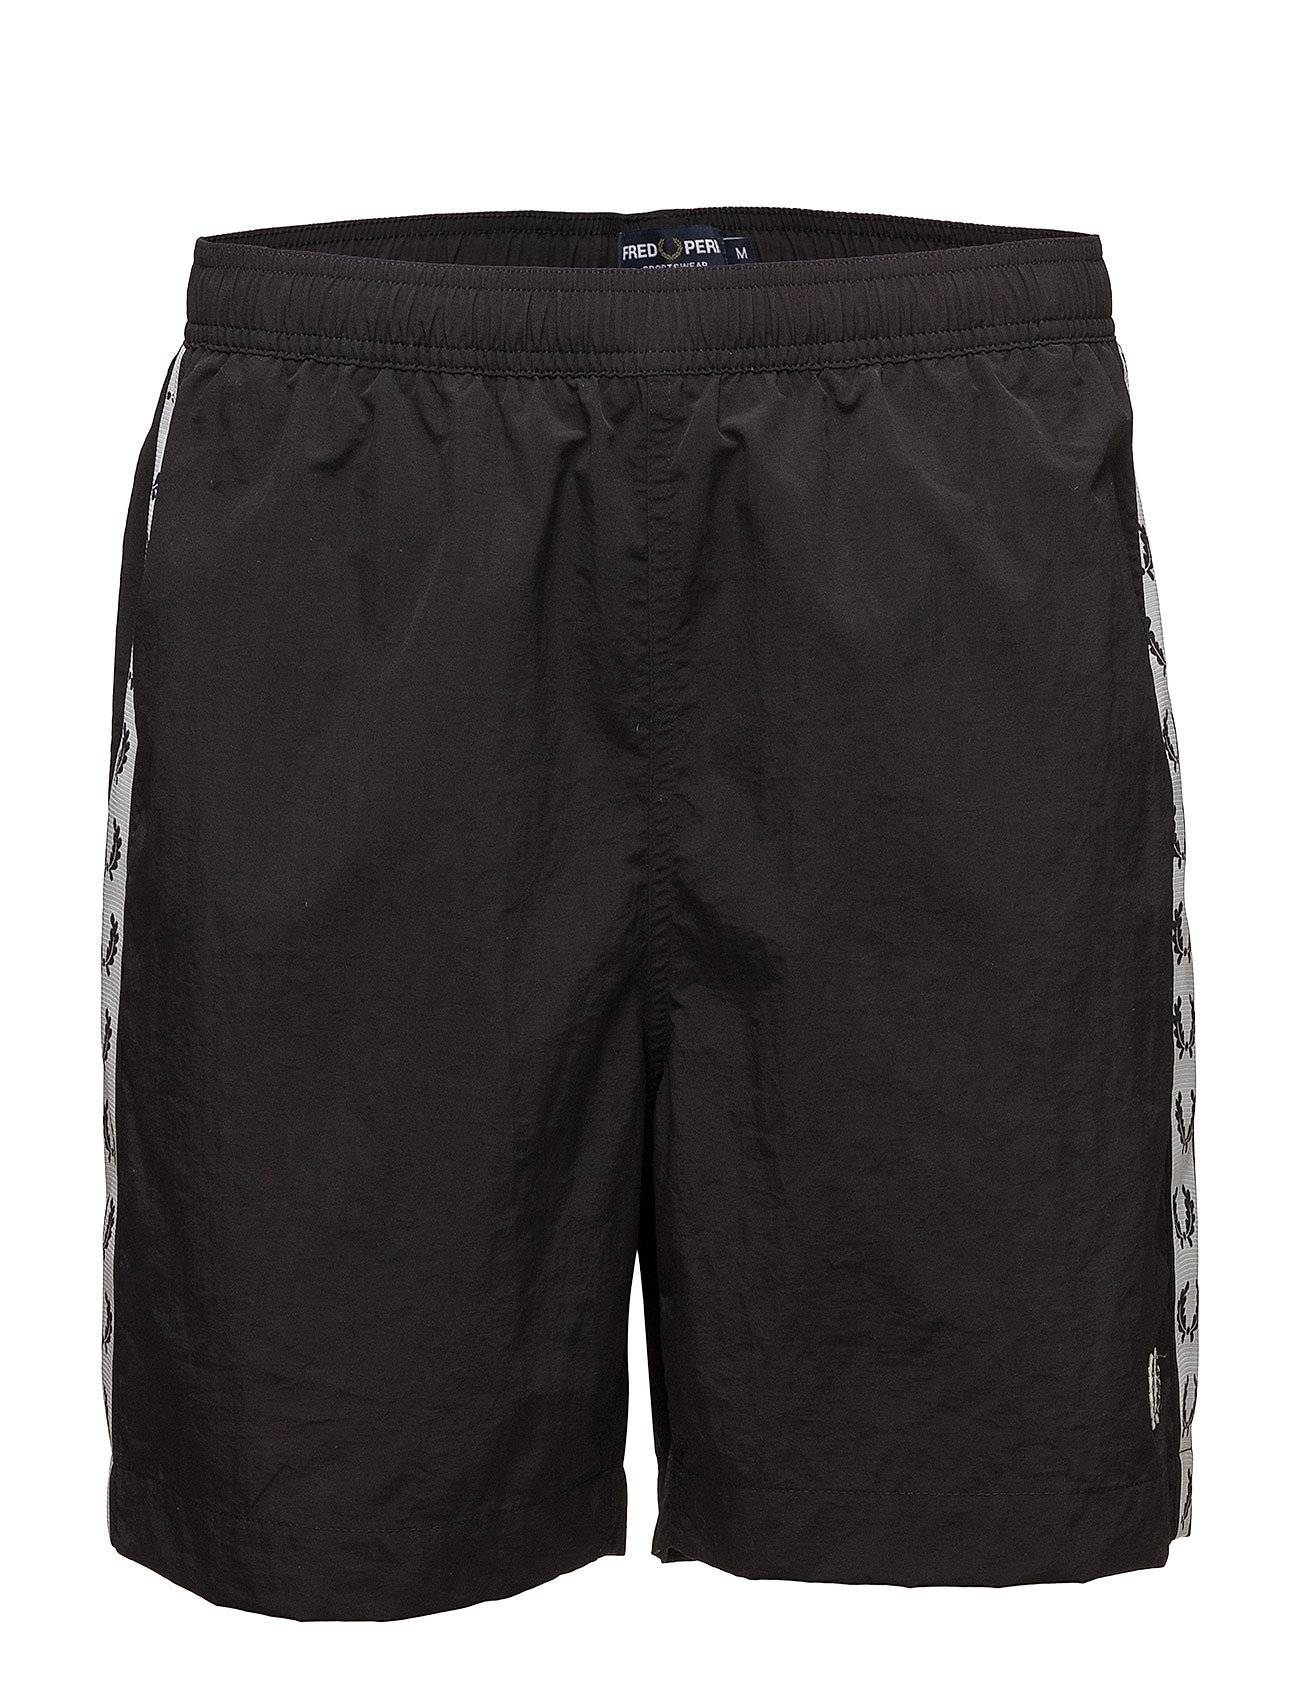 Fred Perry Taped Swimshorts